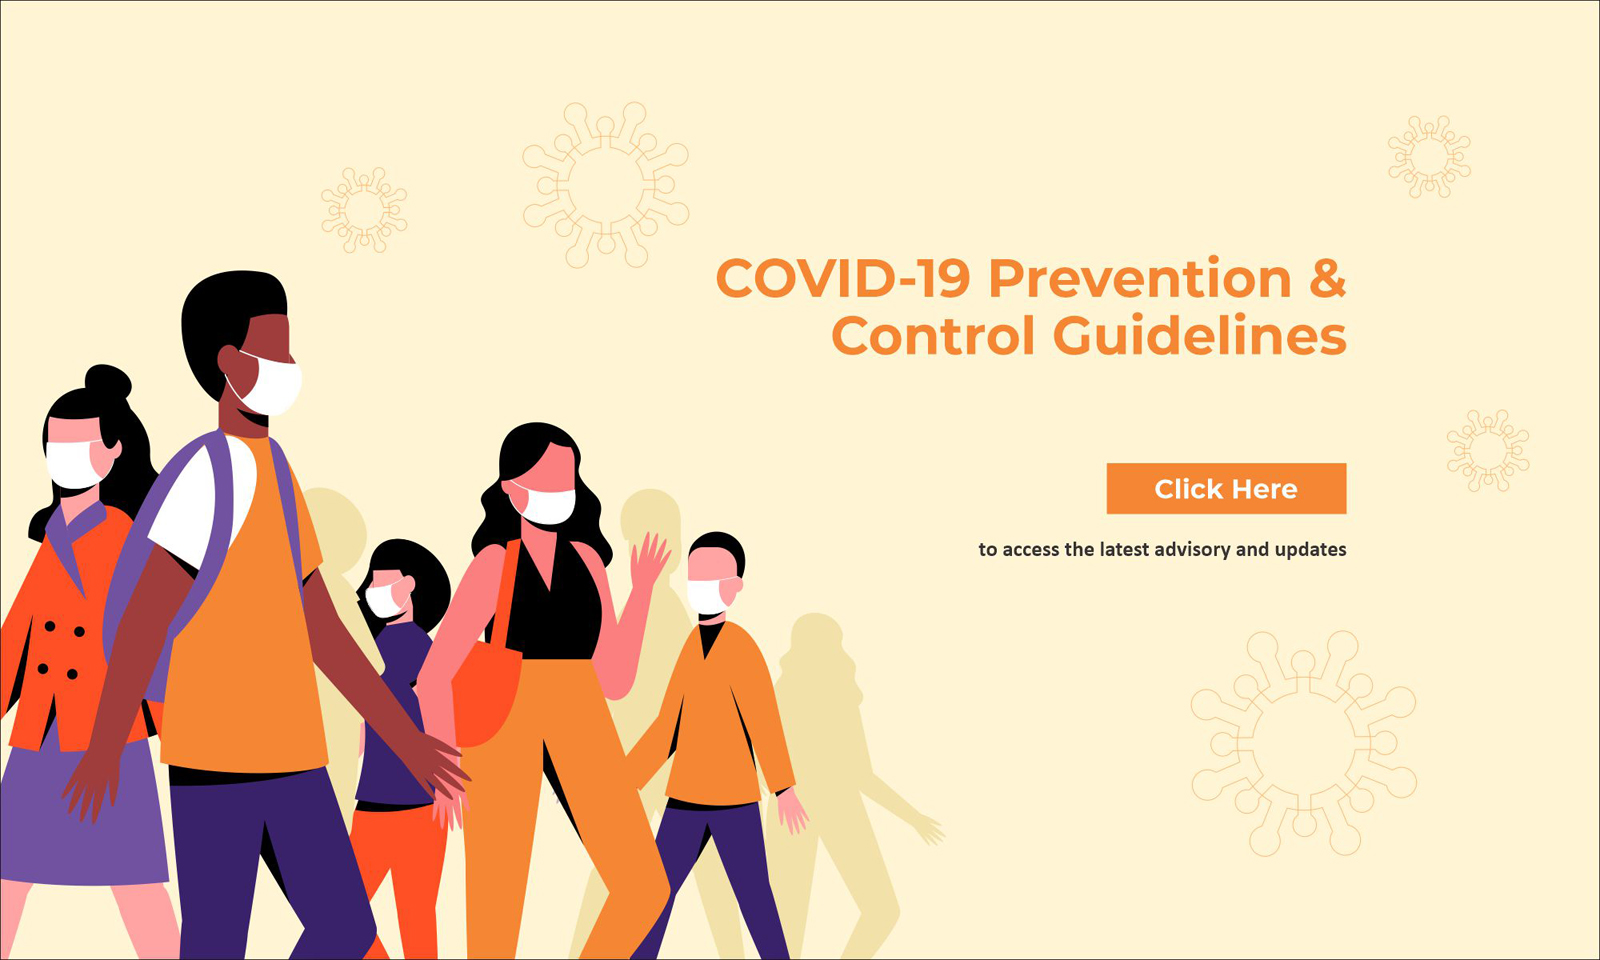 Covid guideline update